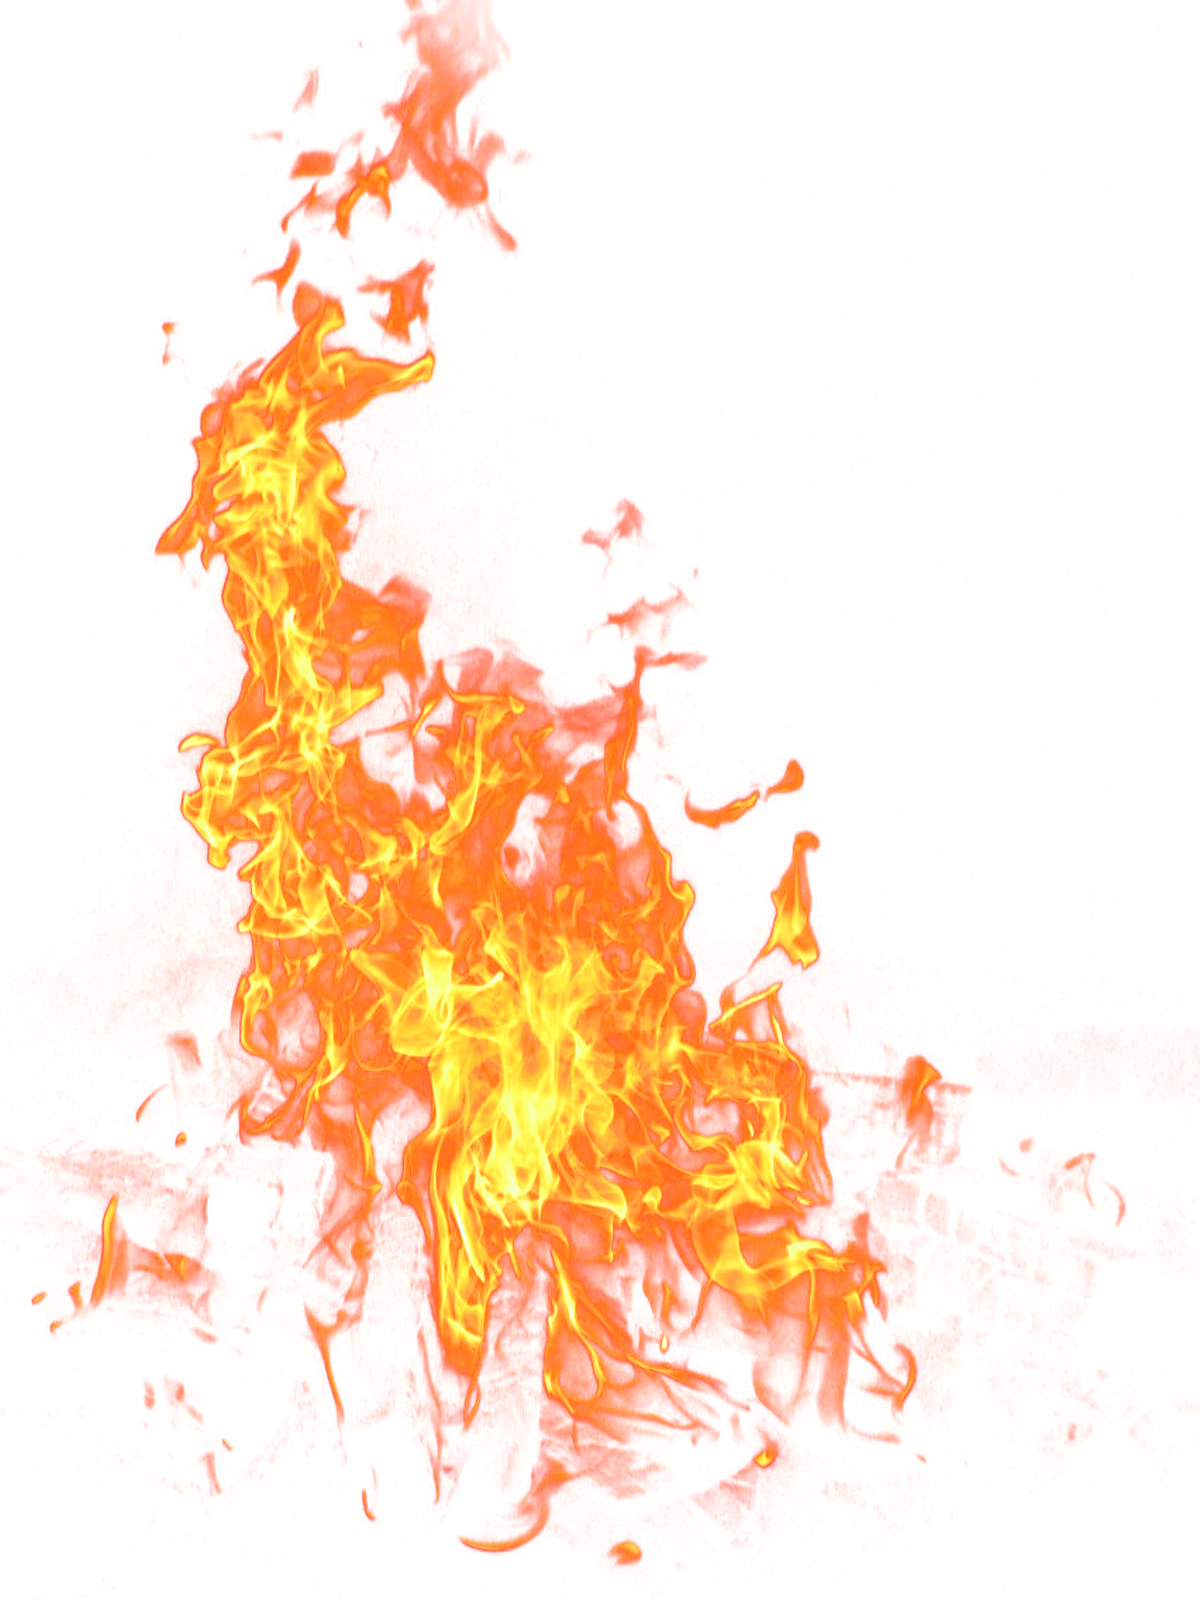 Fire transparent PNG image  Fire transparent PNG image